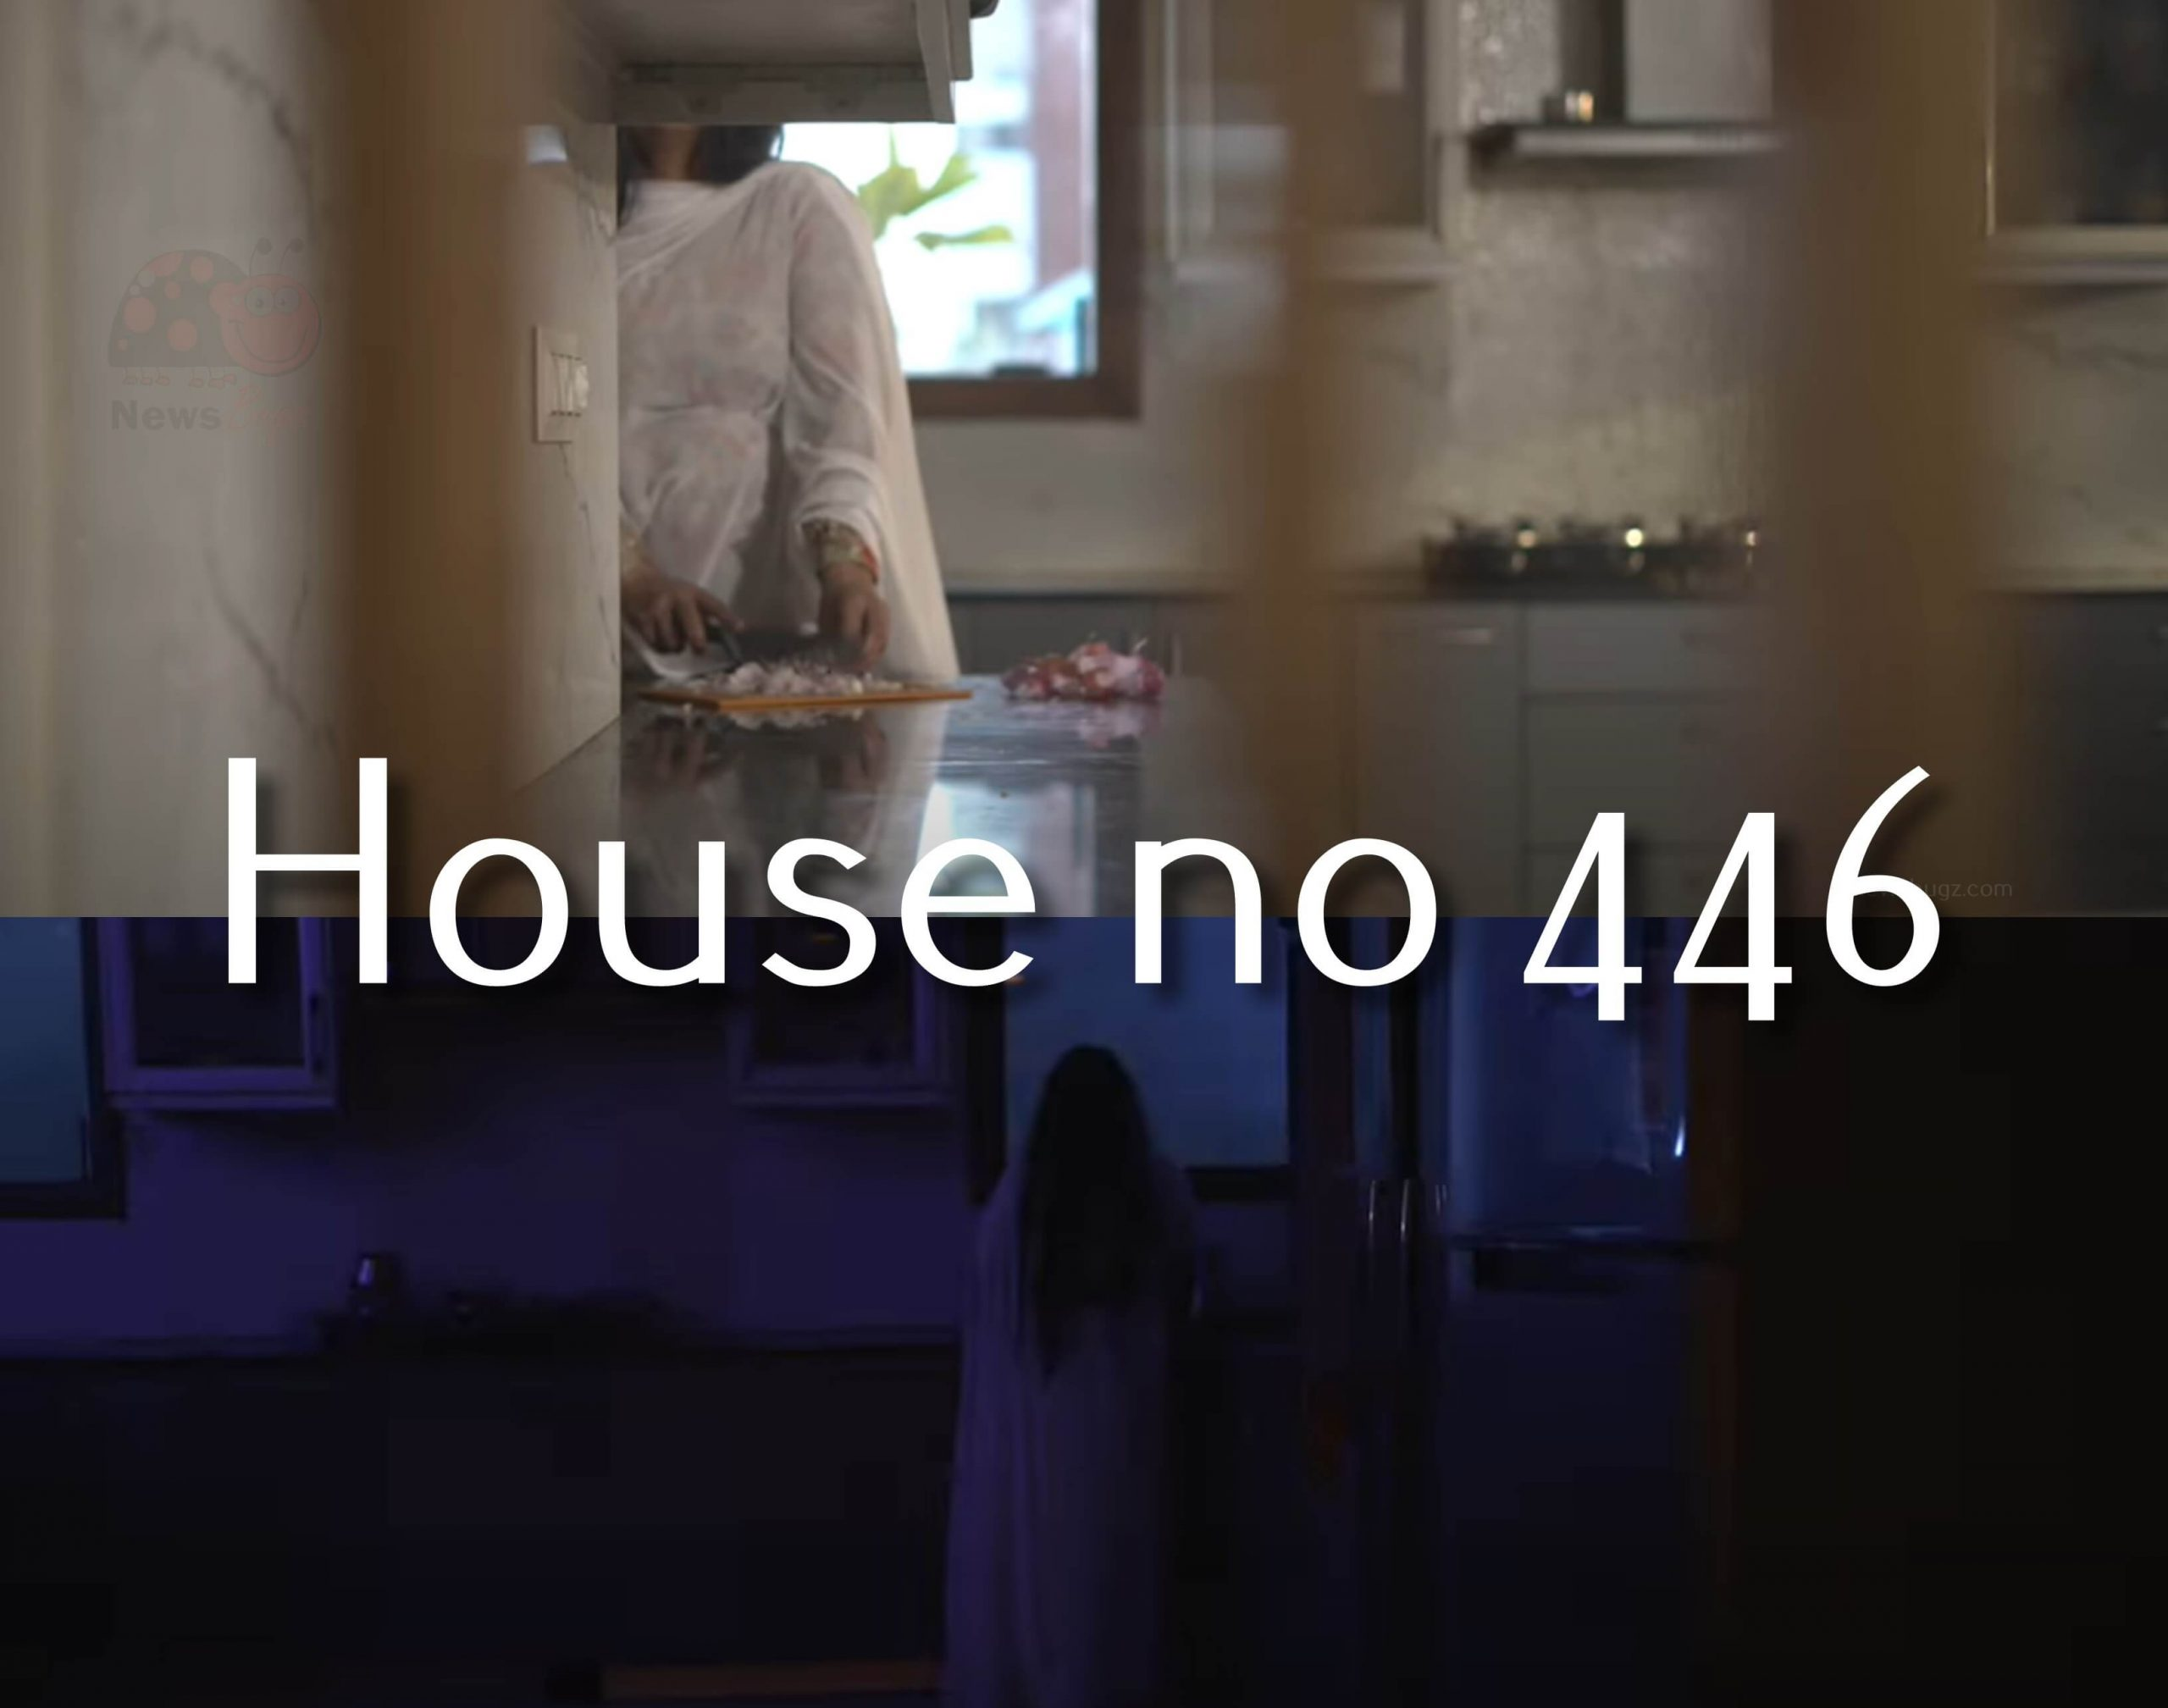 House no 446 Filmybox Full movie, release date, cast, trailer